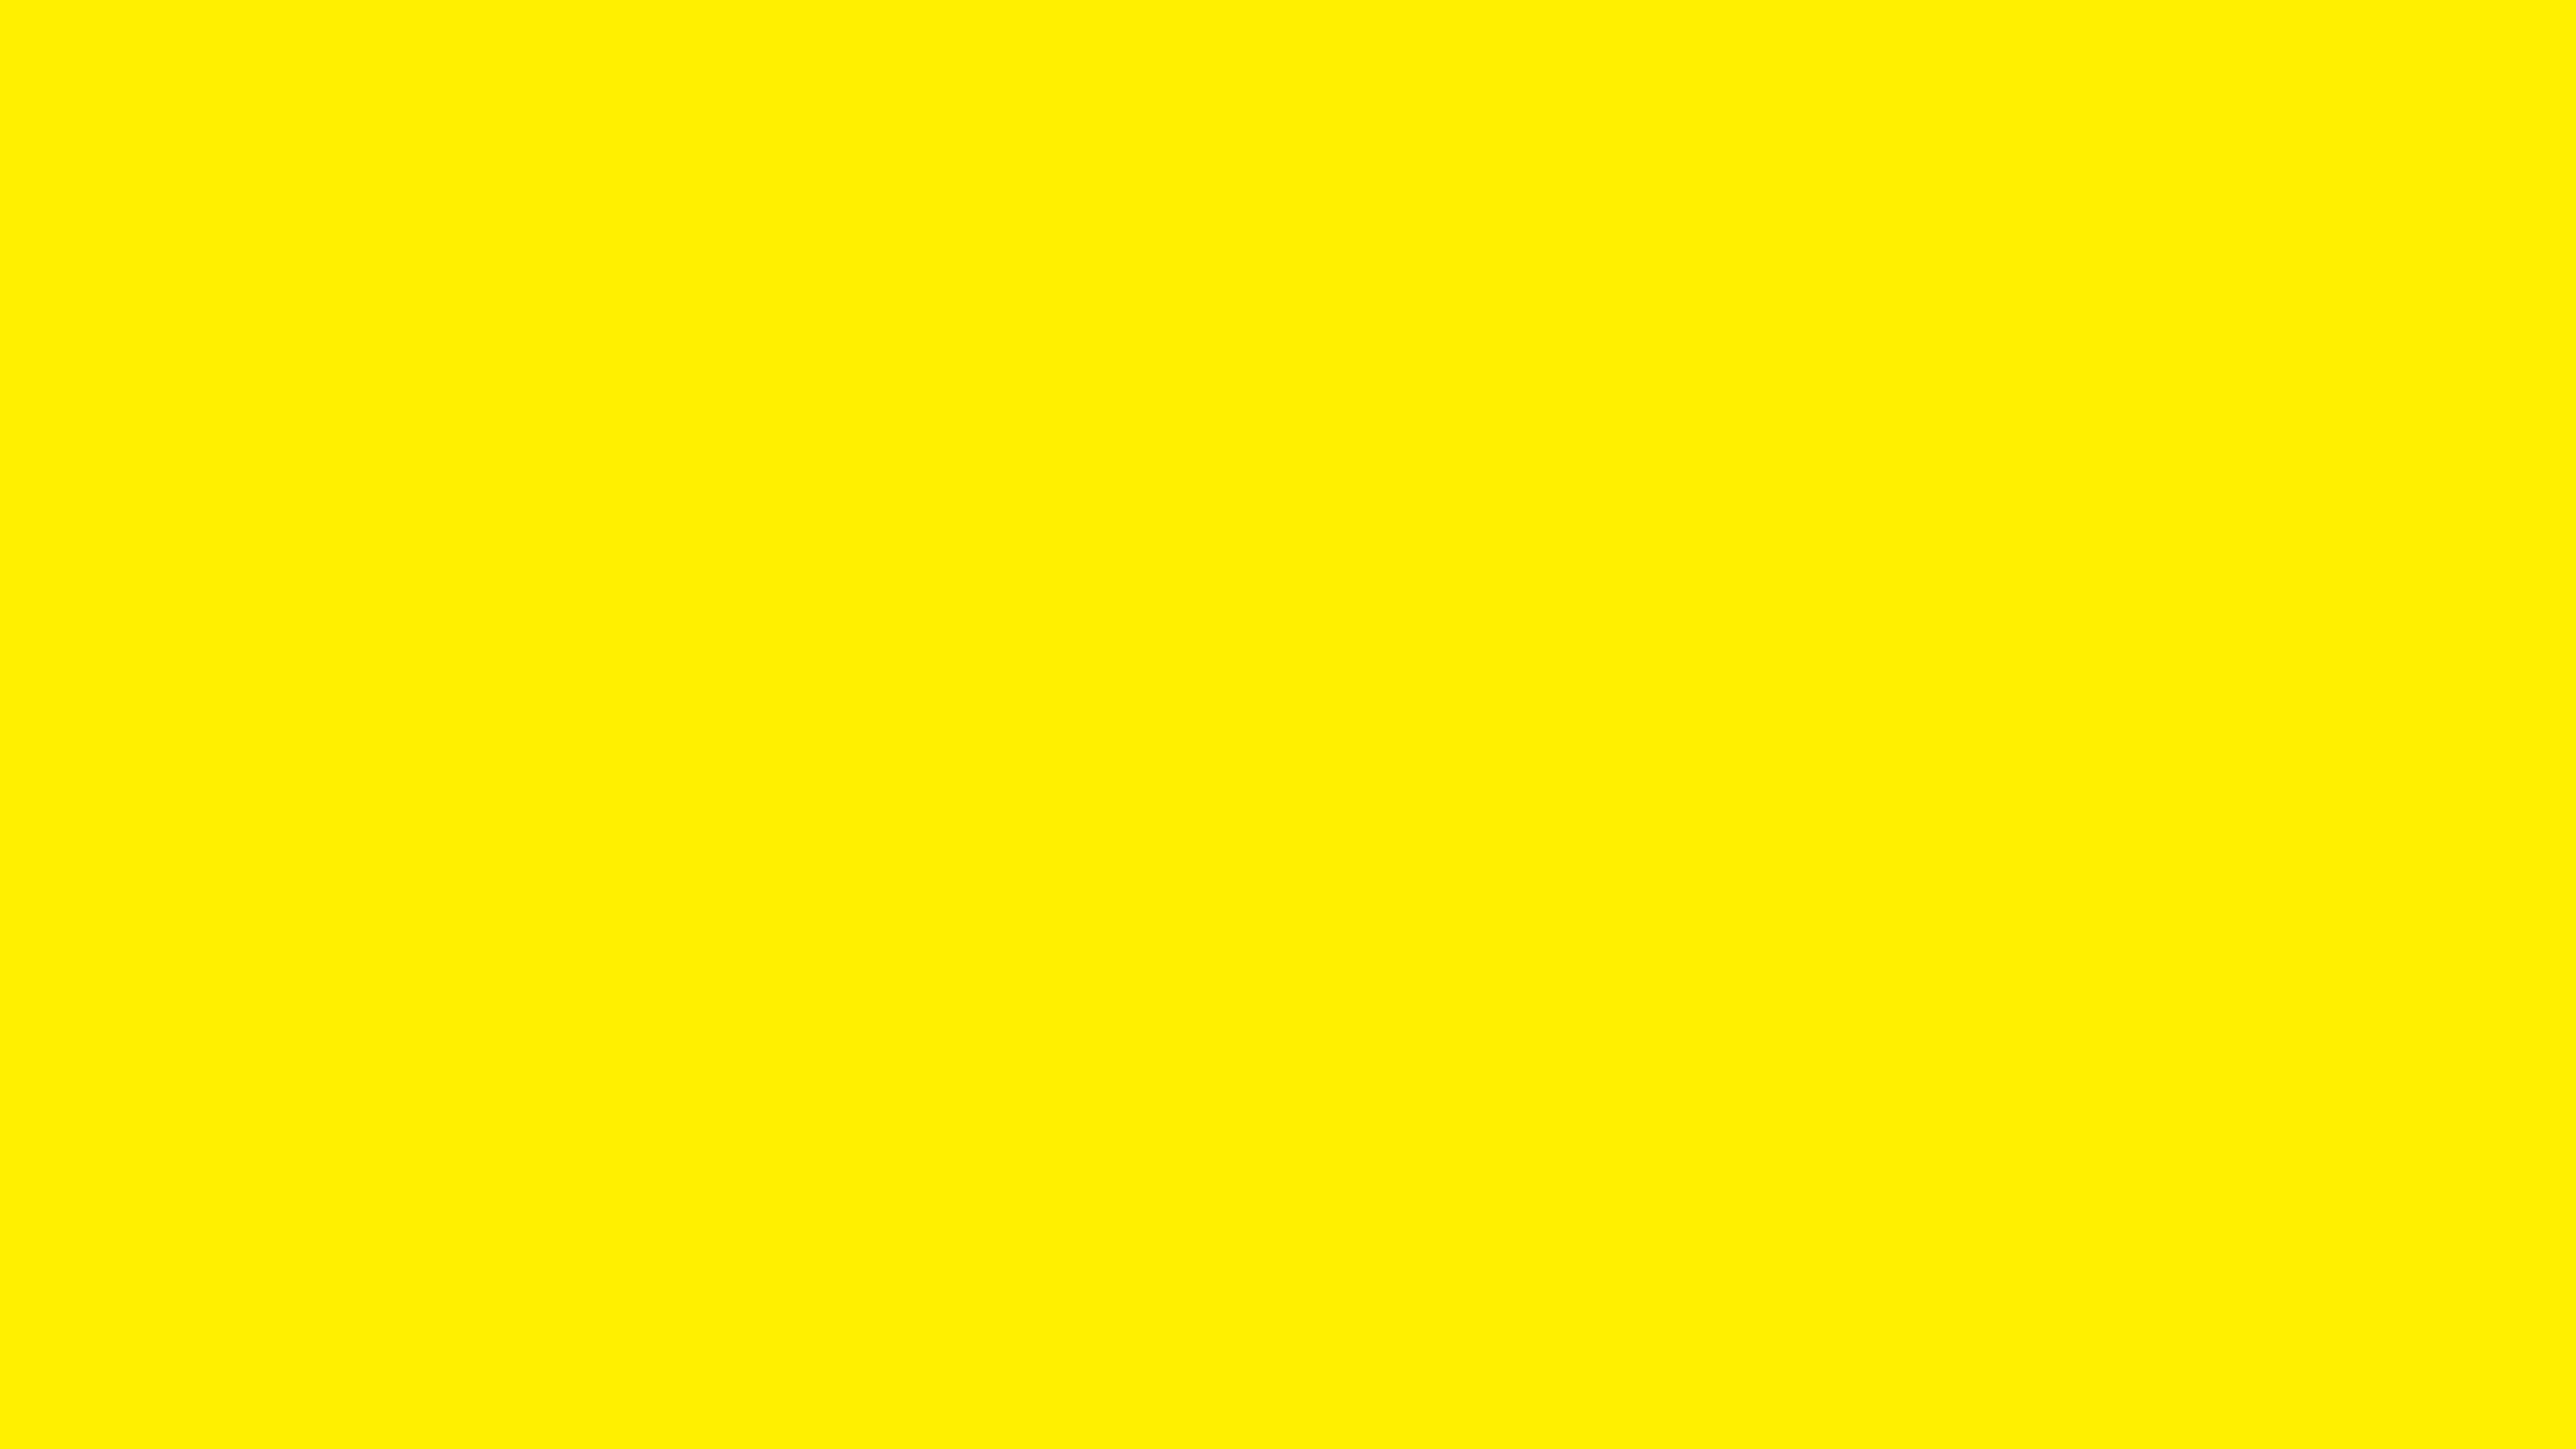 3840x2160 Yellow Rose Solid Color Background